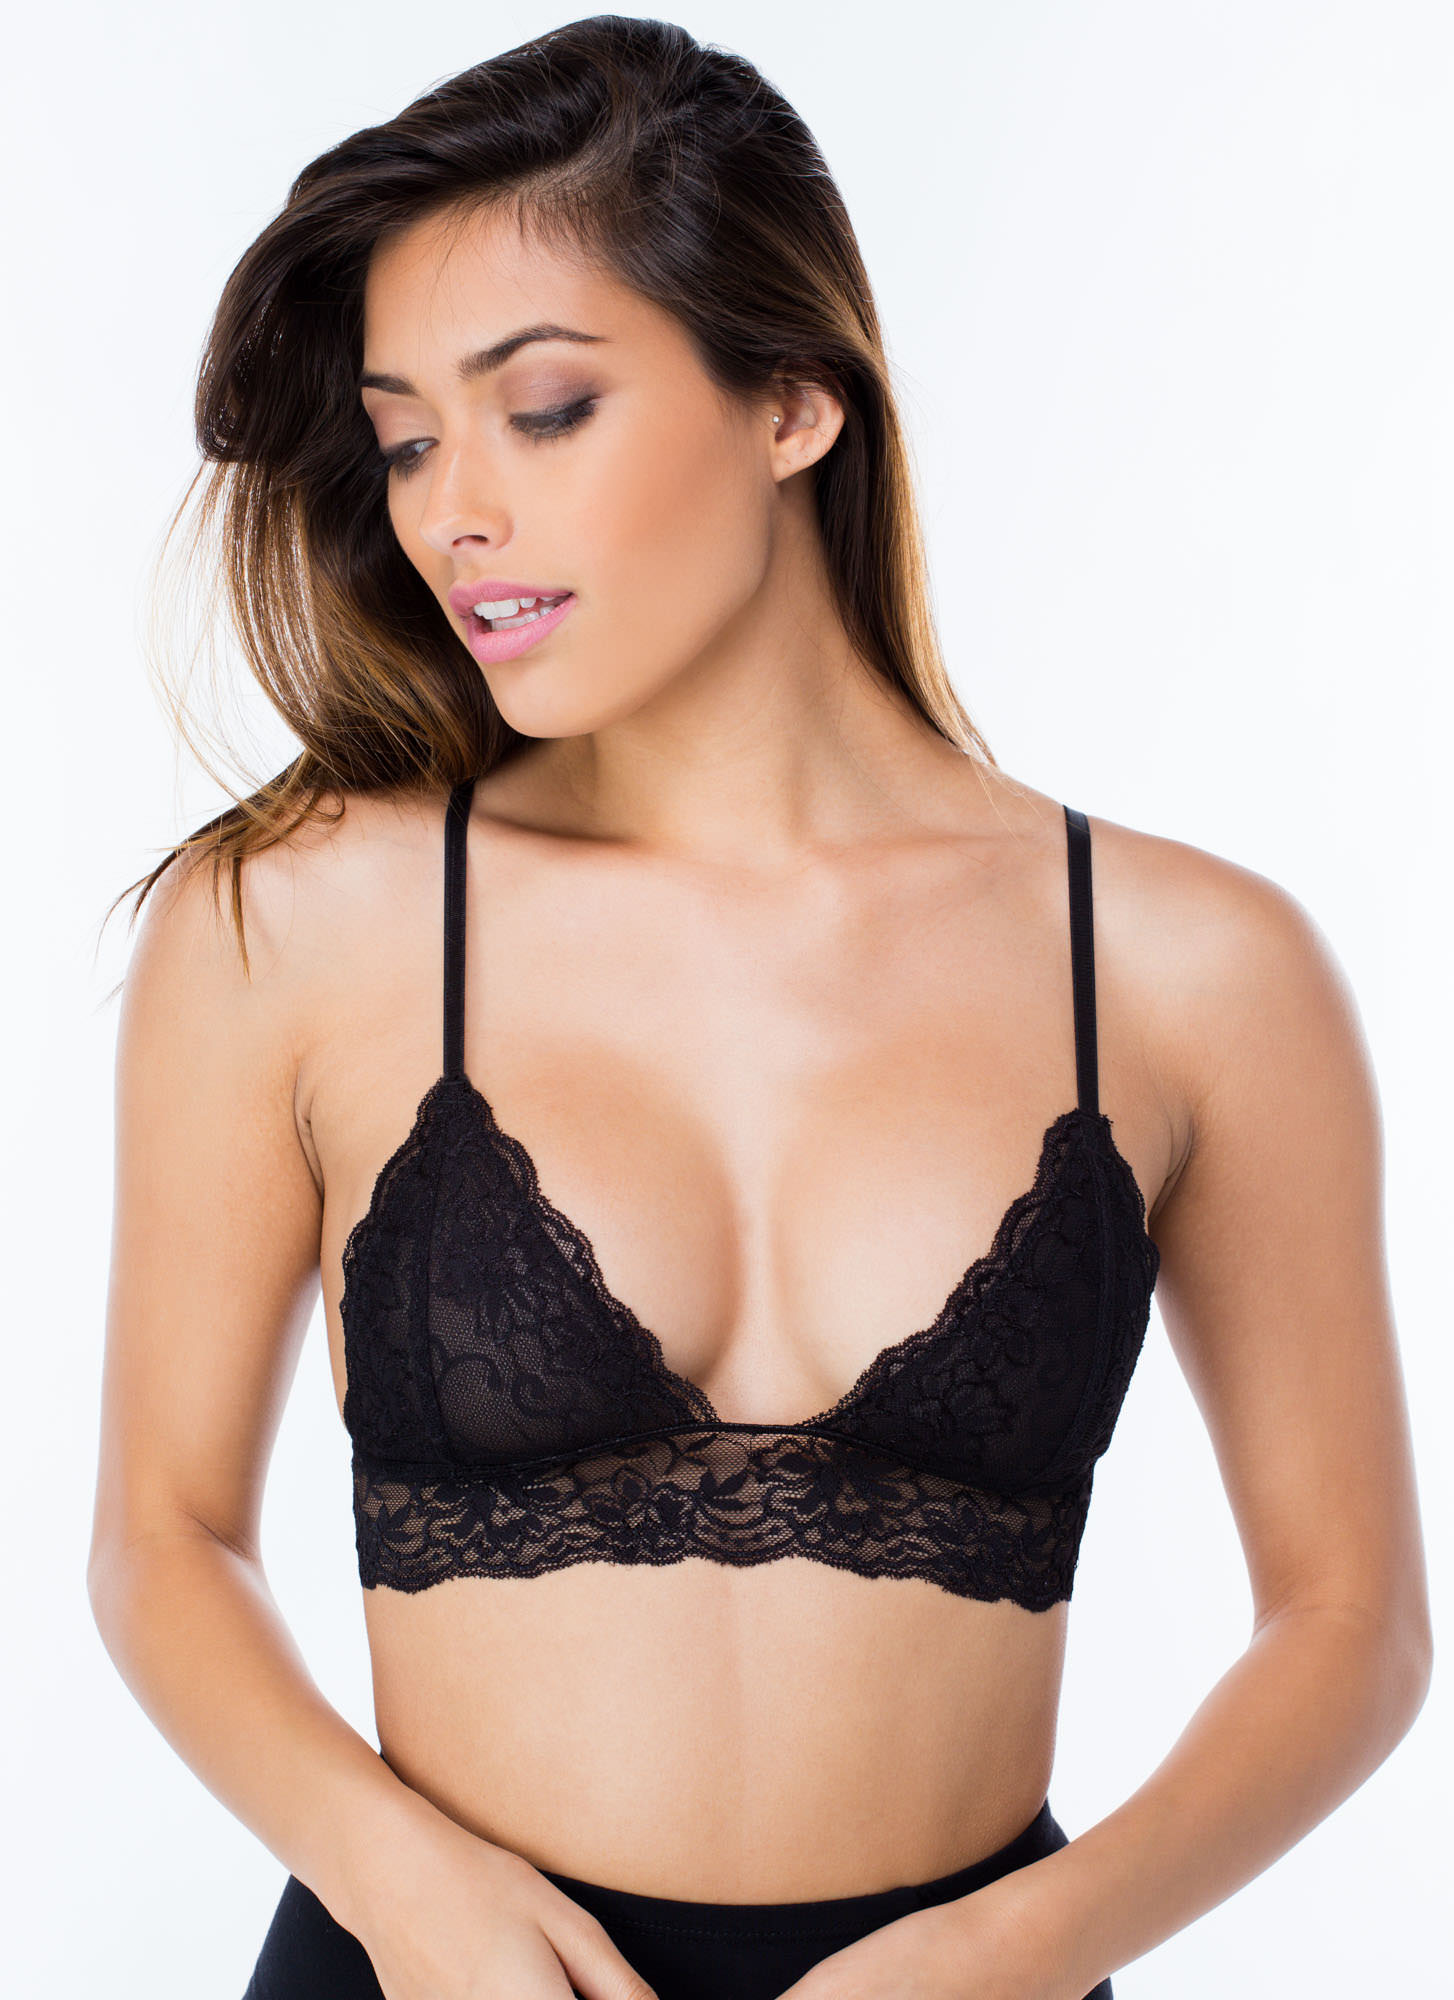 Feminine Flair Lace Bralette Black Grey Burgundy Beige